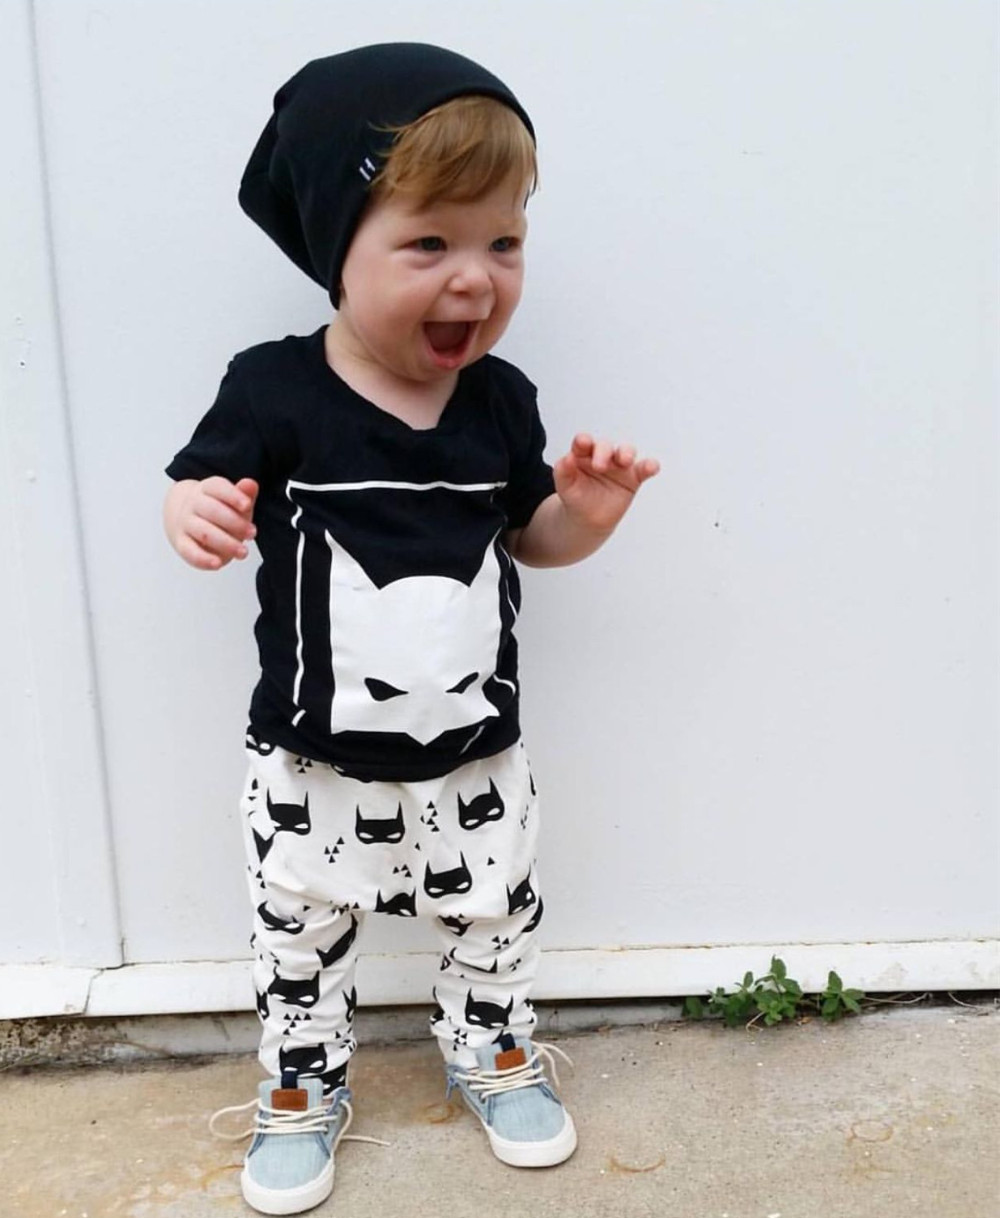 a5325a038cd4 Detail Feedback Questions about 2019 New Fashion baby boy clothing set  infant clothes unisex short sleeved cartoon T shirt+pants 2pcs newborn baby  girl ...